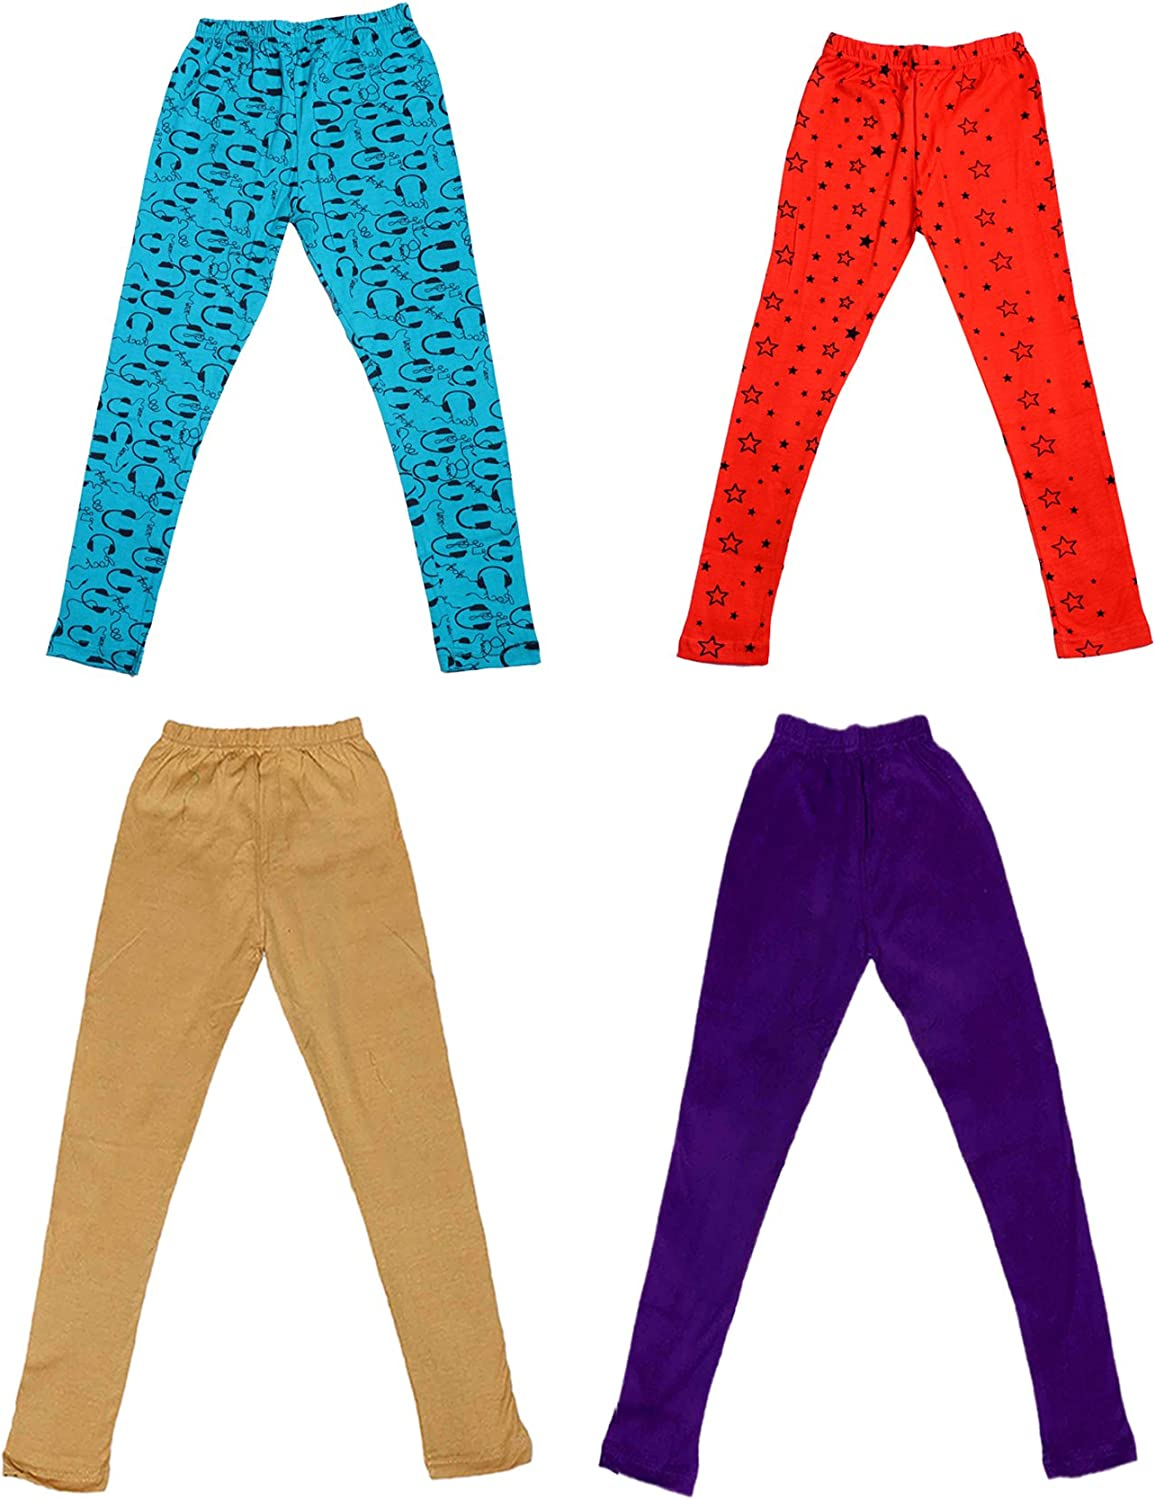 Indistar Girls 2 Cotton Solid Legging Pants and 2 Cotton Printed Legging Pants Pack Of 4 /_Multicolor/_Size-3-5 Years/_71401021617-IW-P4-24